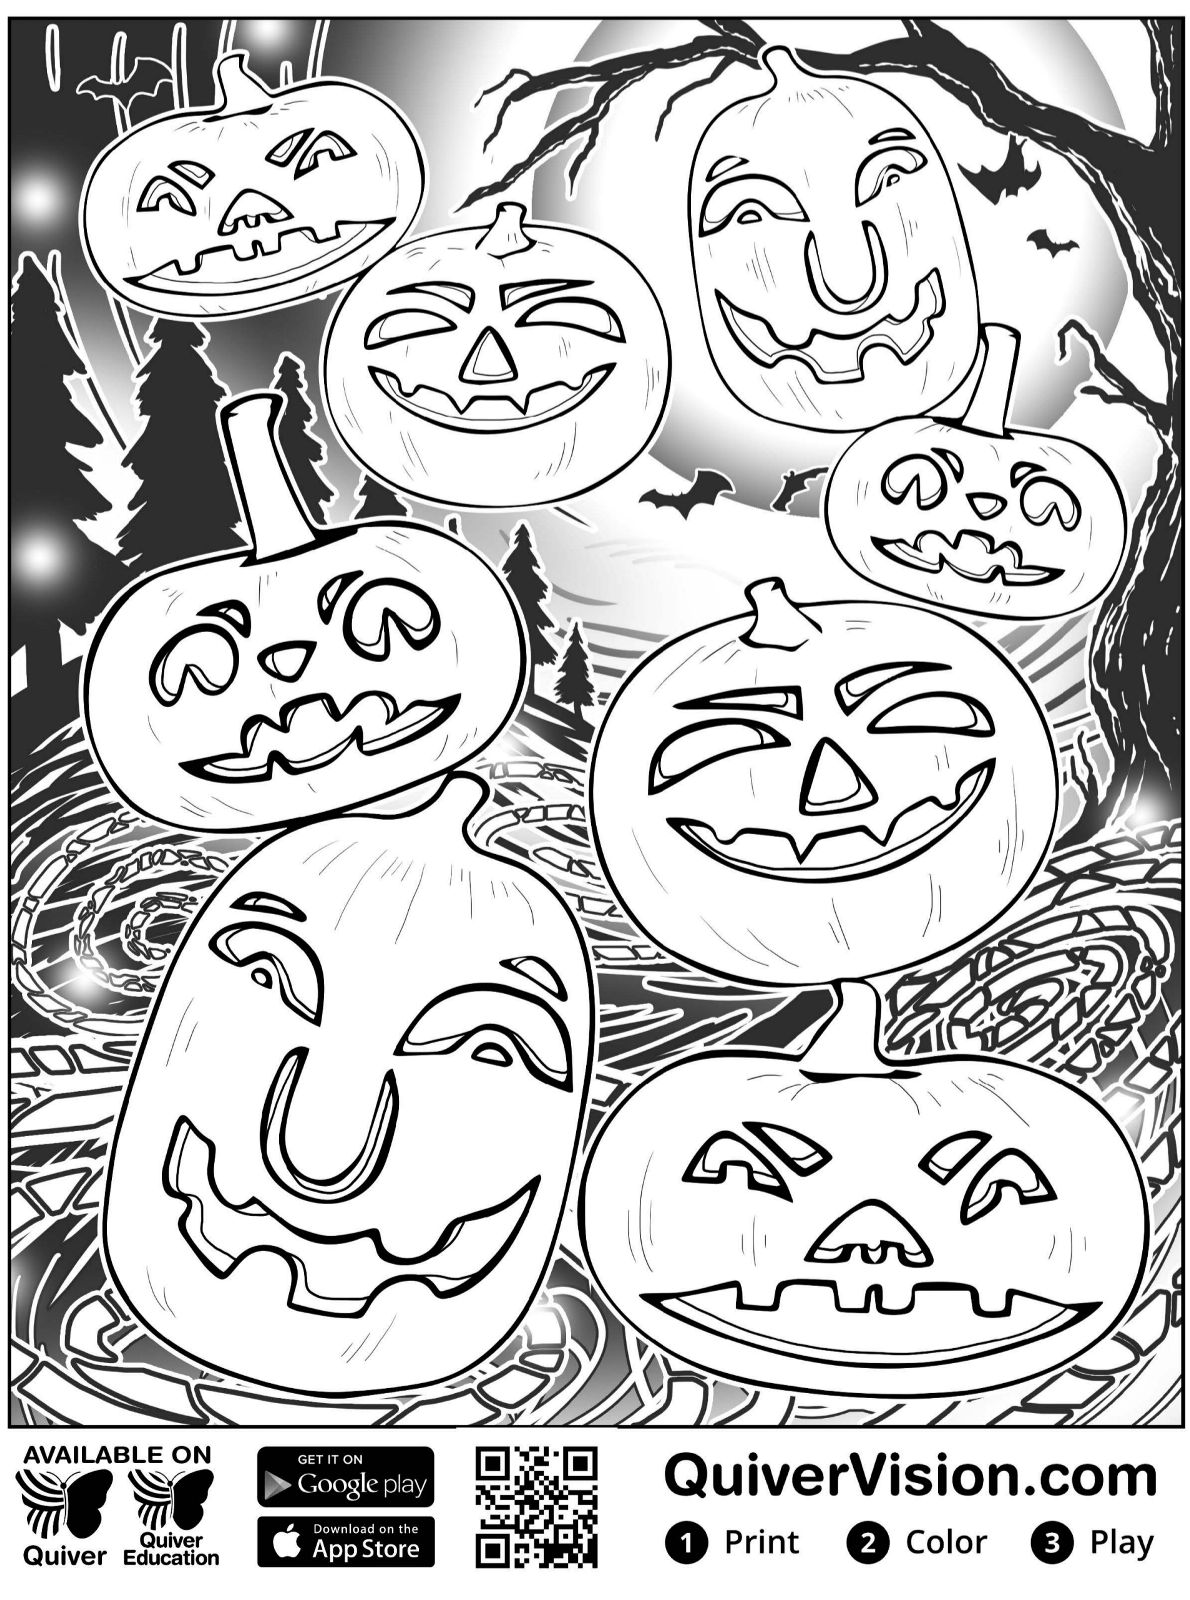 Kids n fun.com   Coloring page Quiver halloween